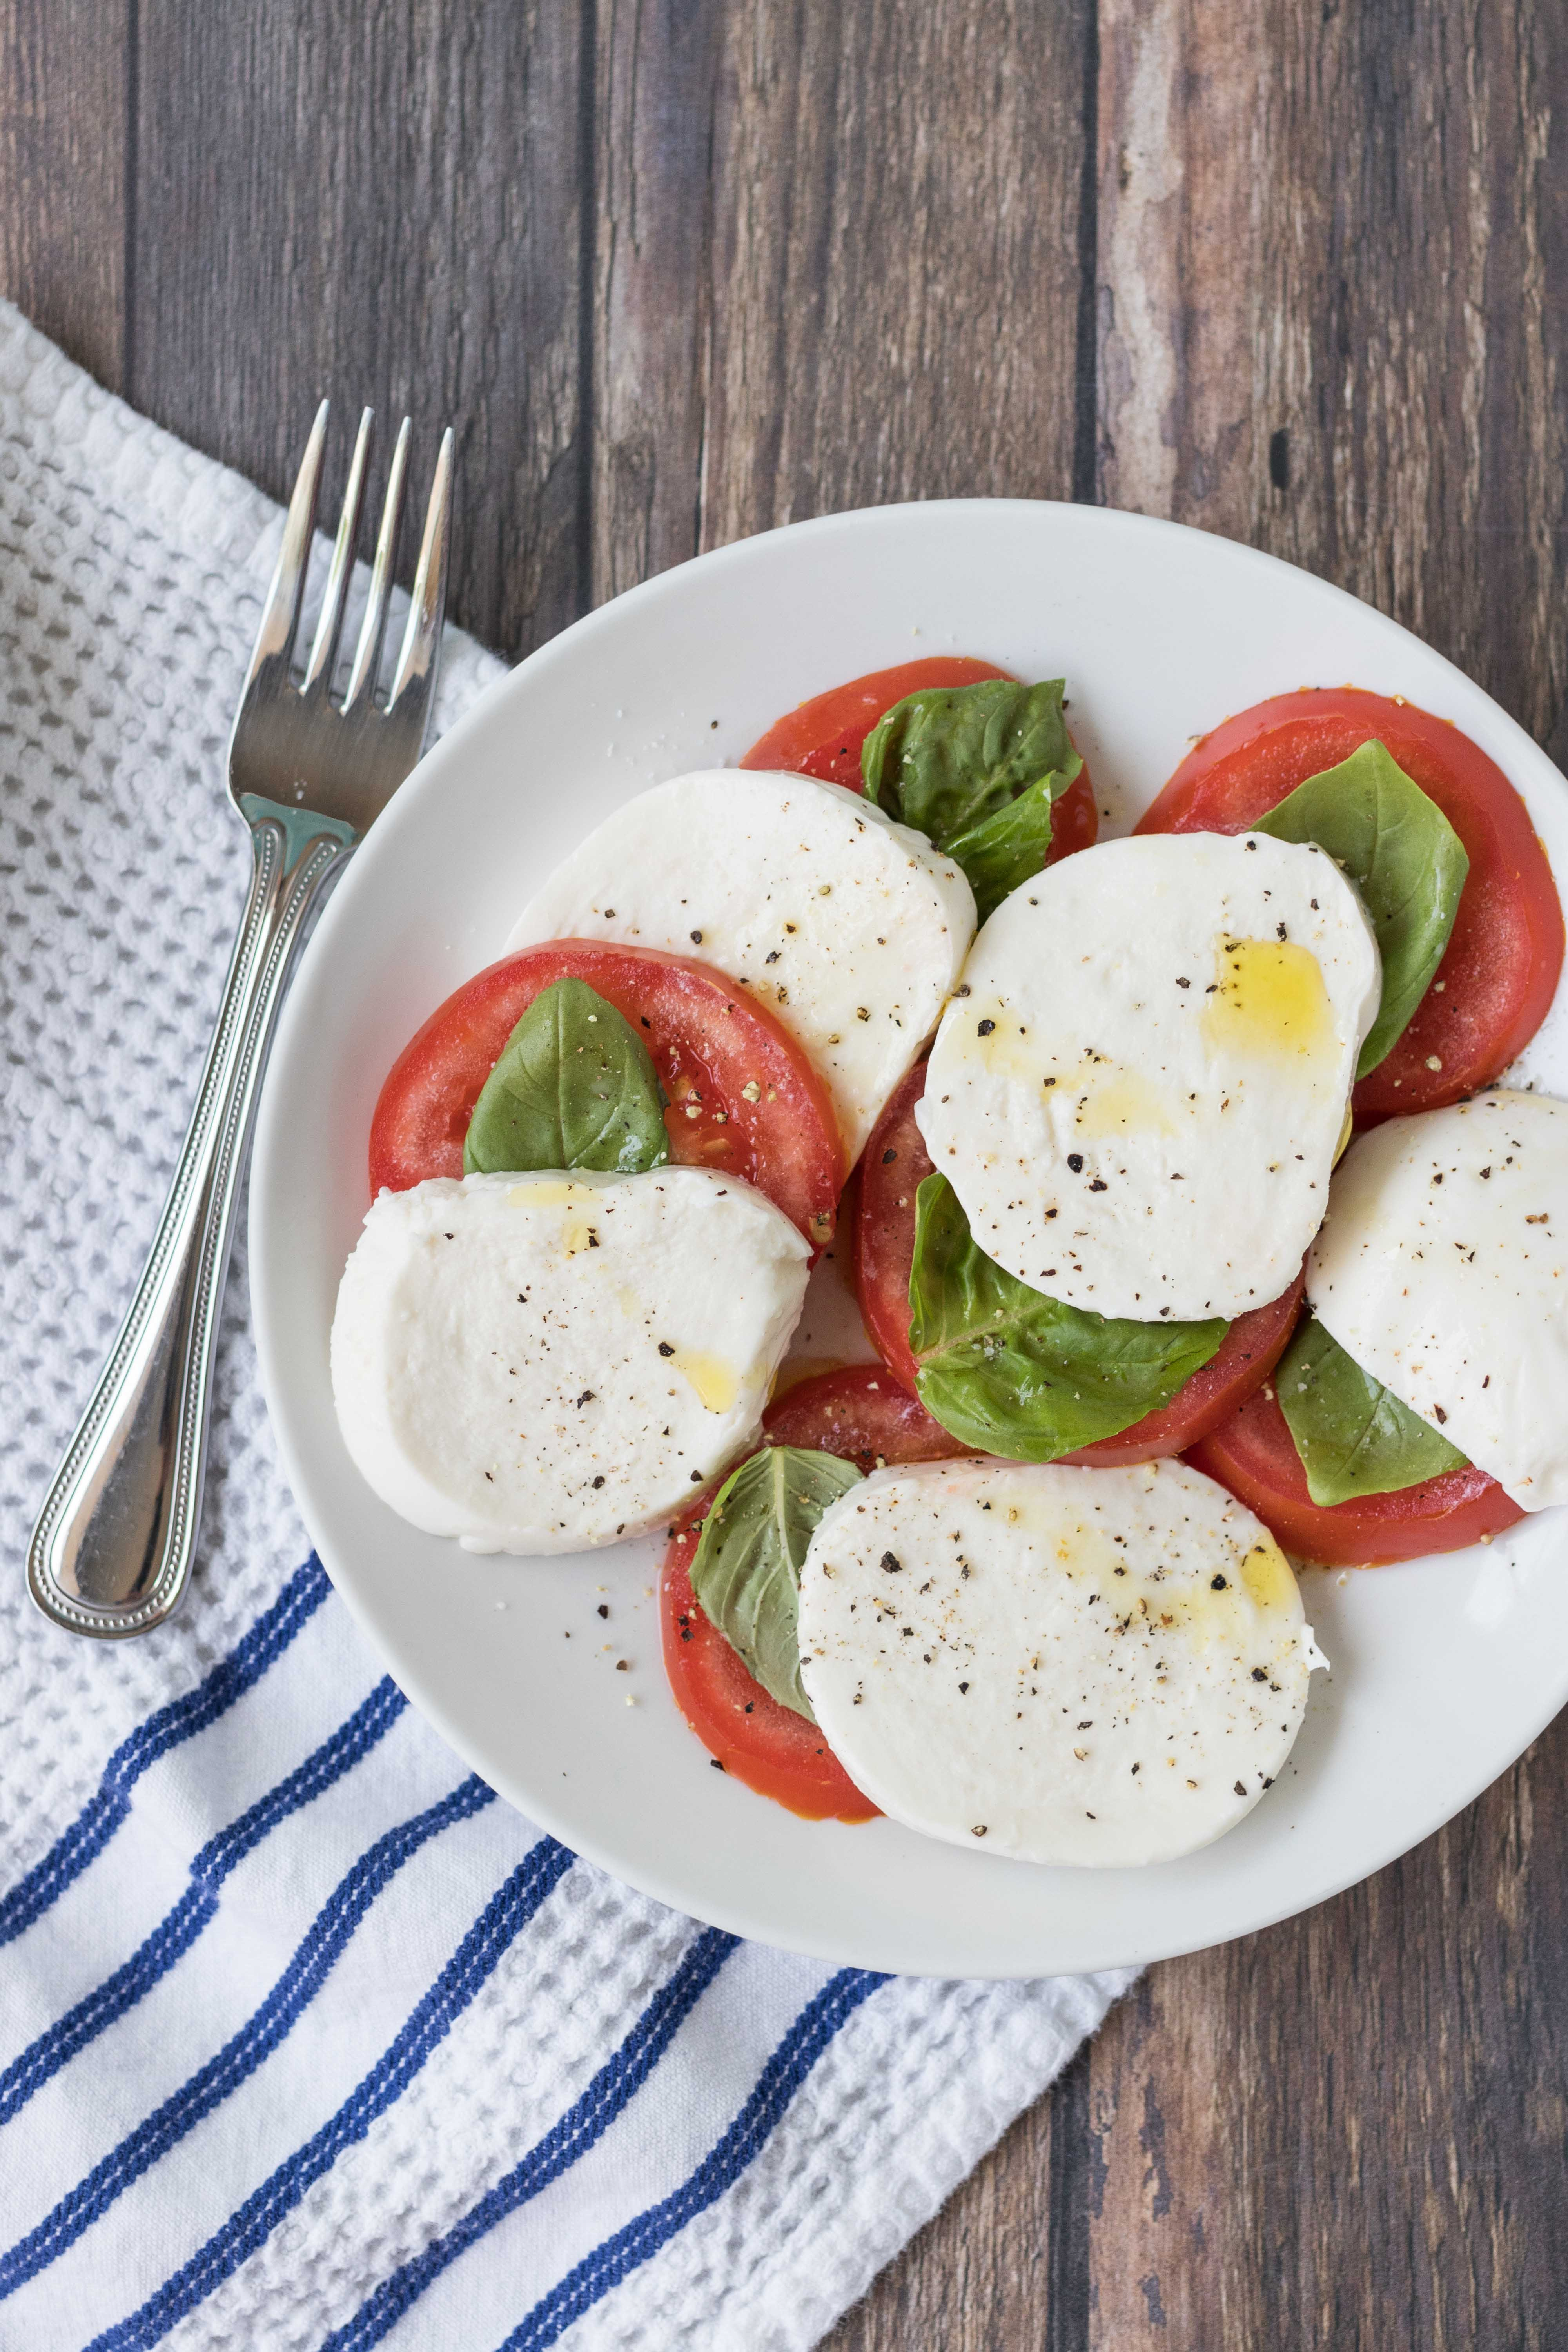 Caprese salad is an easy, flavorful summer recipe to use up fresh tomatoes and basil. #capresesalad #capreserecipes #summerrecipes | https://www.roseclearfield.com